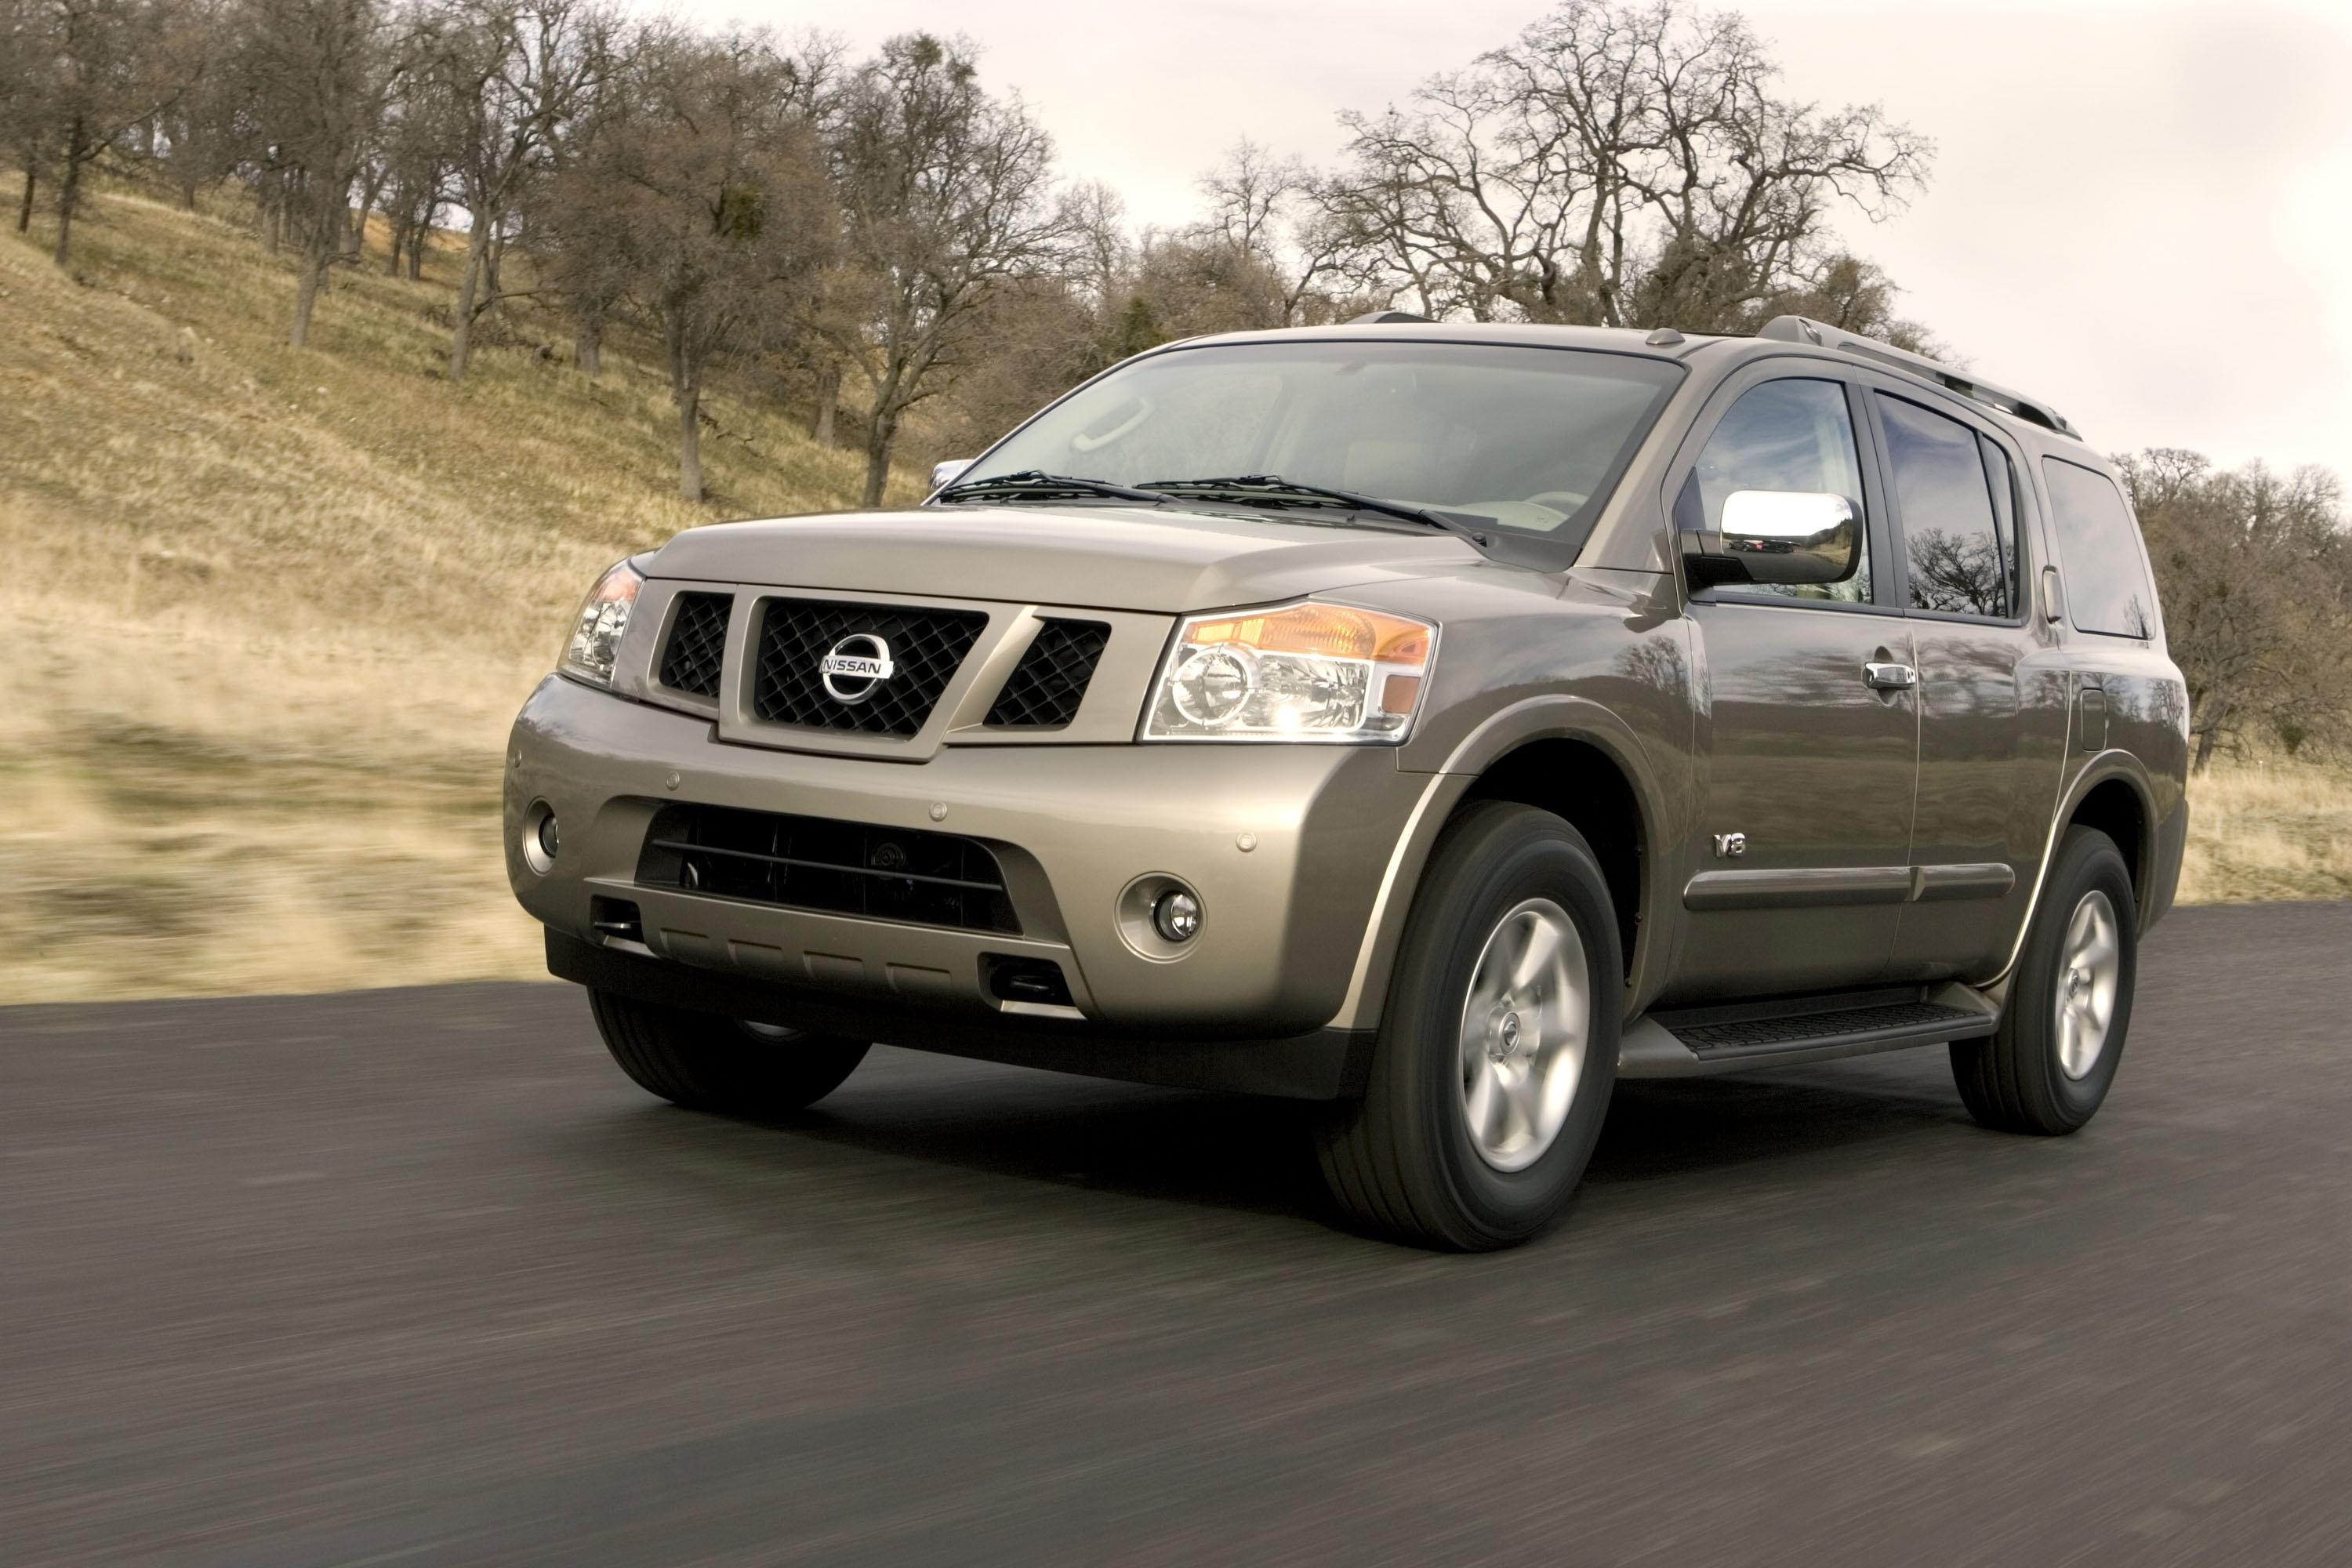 2008 nissan titan and armada pricing announced news top speed. Black Bedroom Furniture Sets. Home Design Ideas